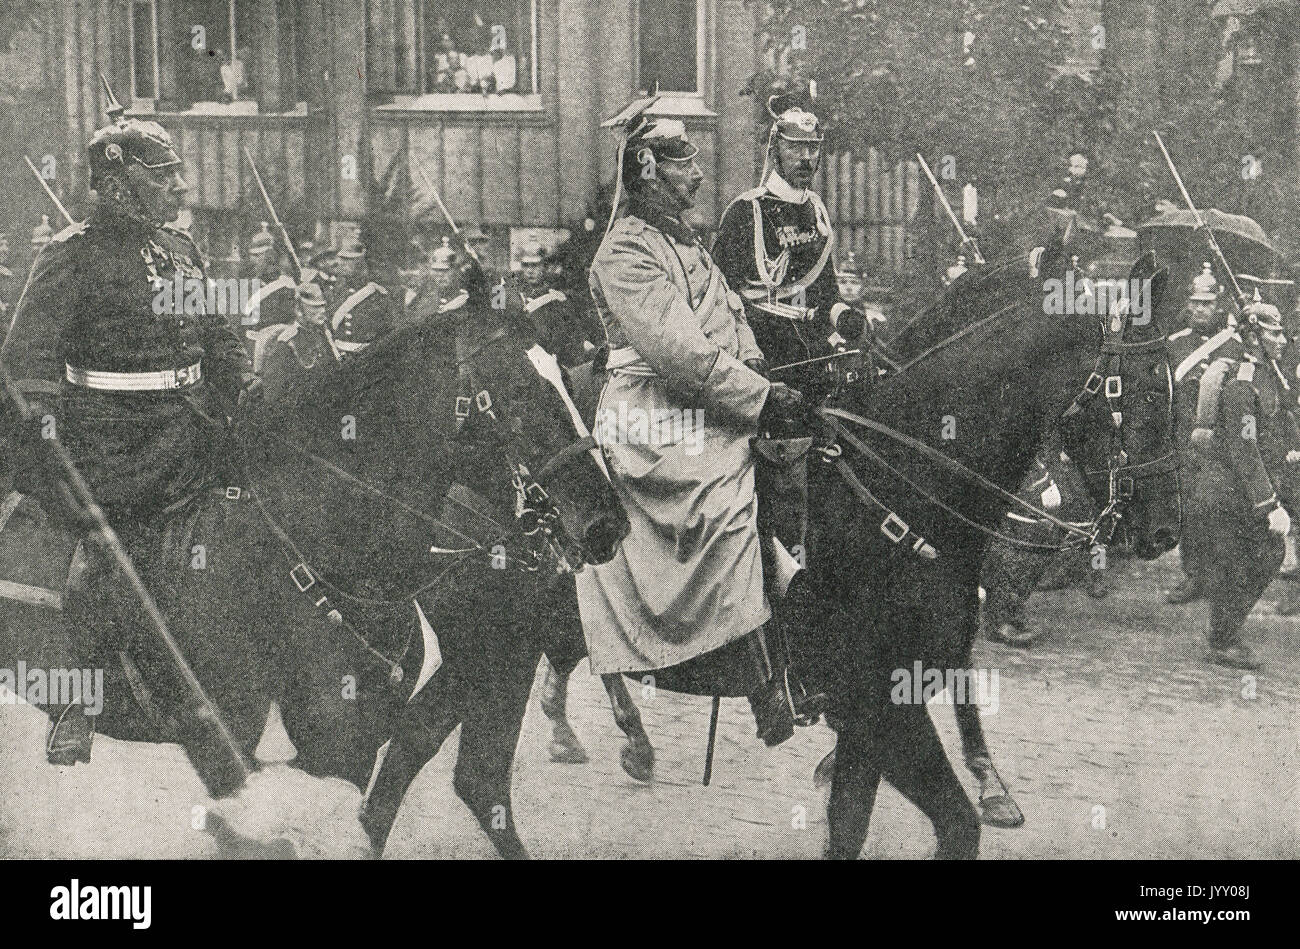 Kaiser Wilhelm going to the front, WW1 - Stock Image